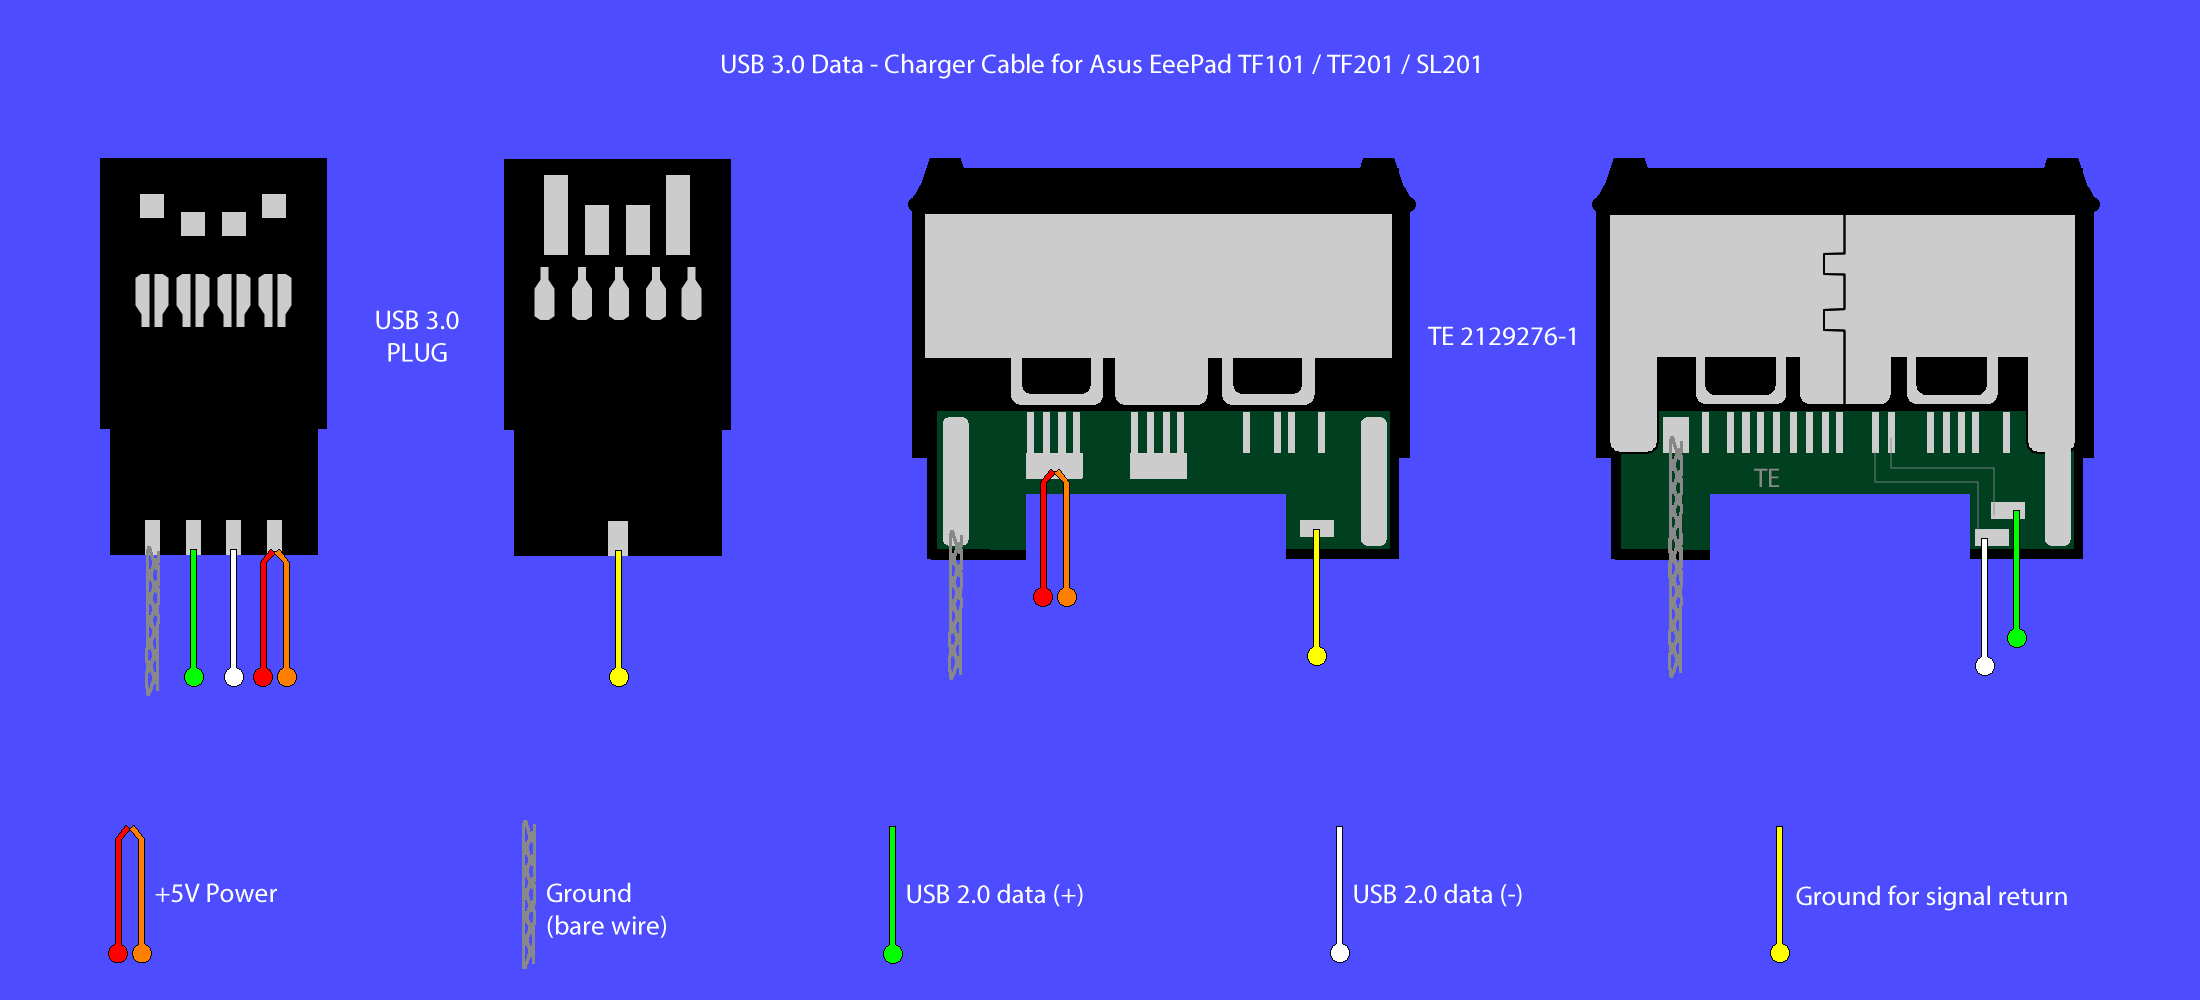 Iphone 5 Usb Wiring Diagram | Wiring Diagram - Iphone 5 Usb Cable Wiring Diagram